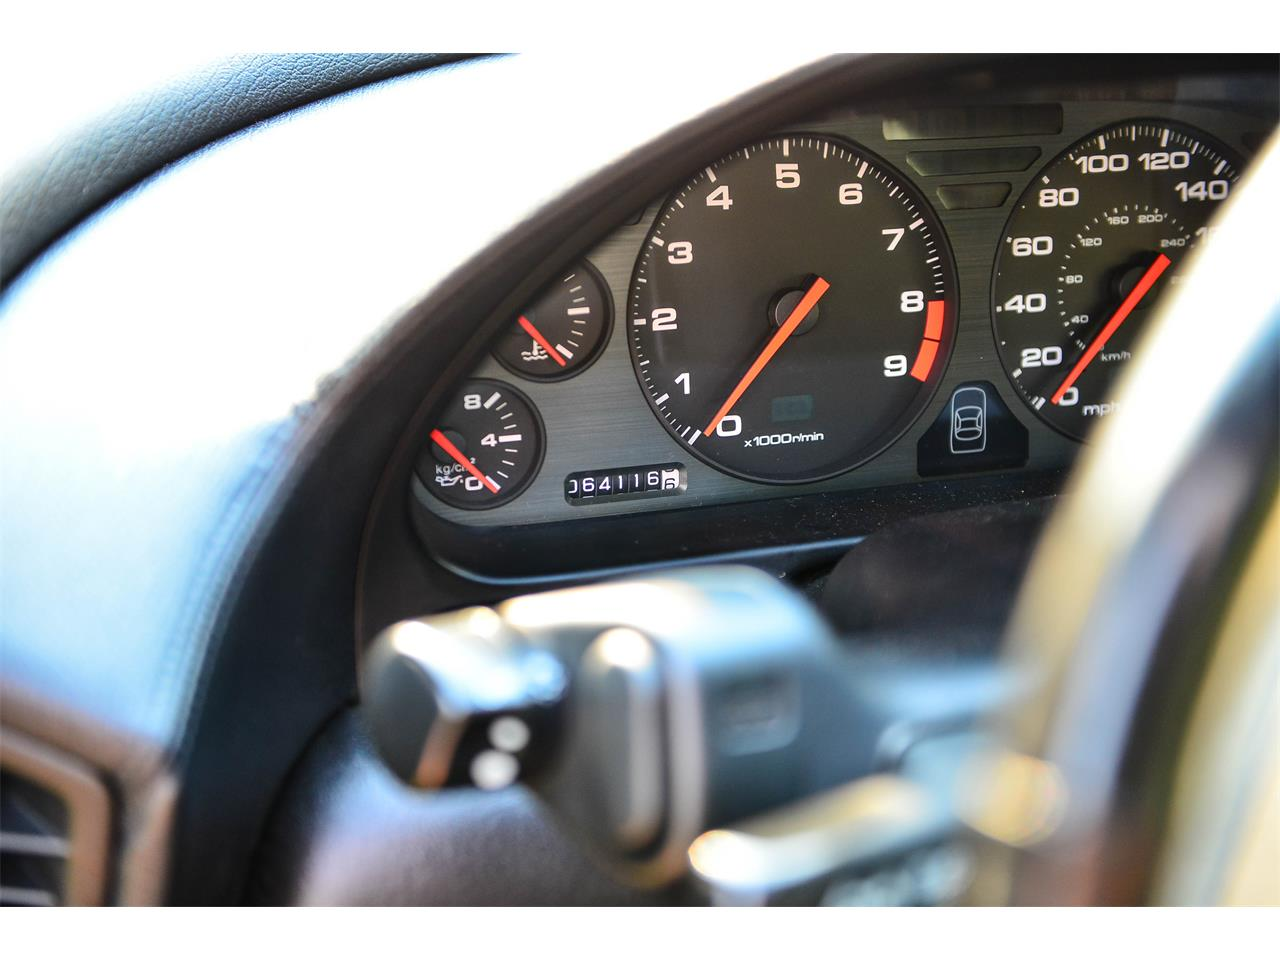 Large Picture of '93 Acura NSX located in Missouri - $55,500.00 Offered by a Private Seller - M4DD